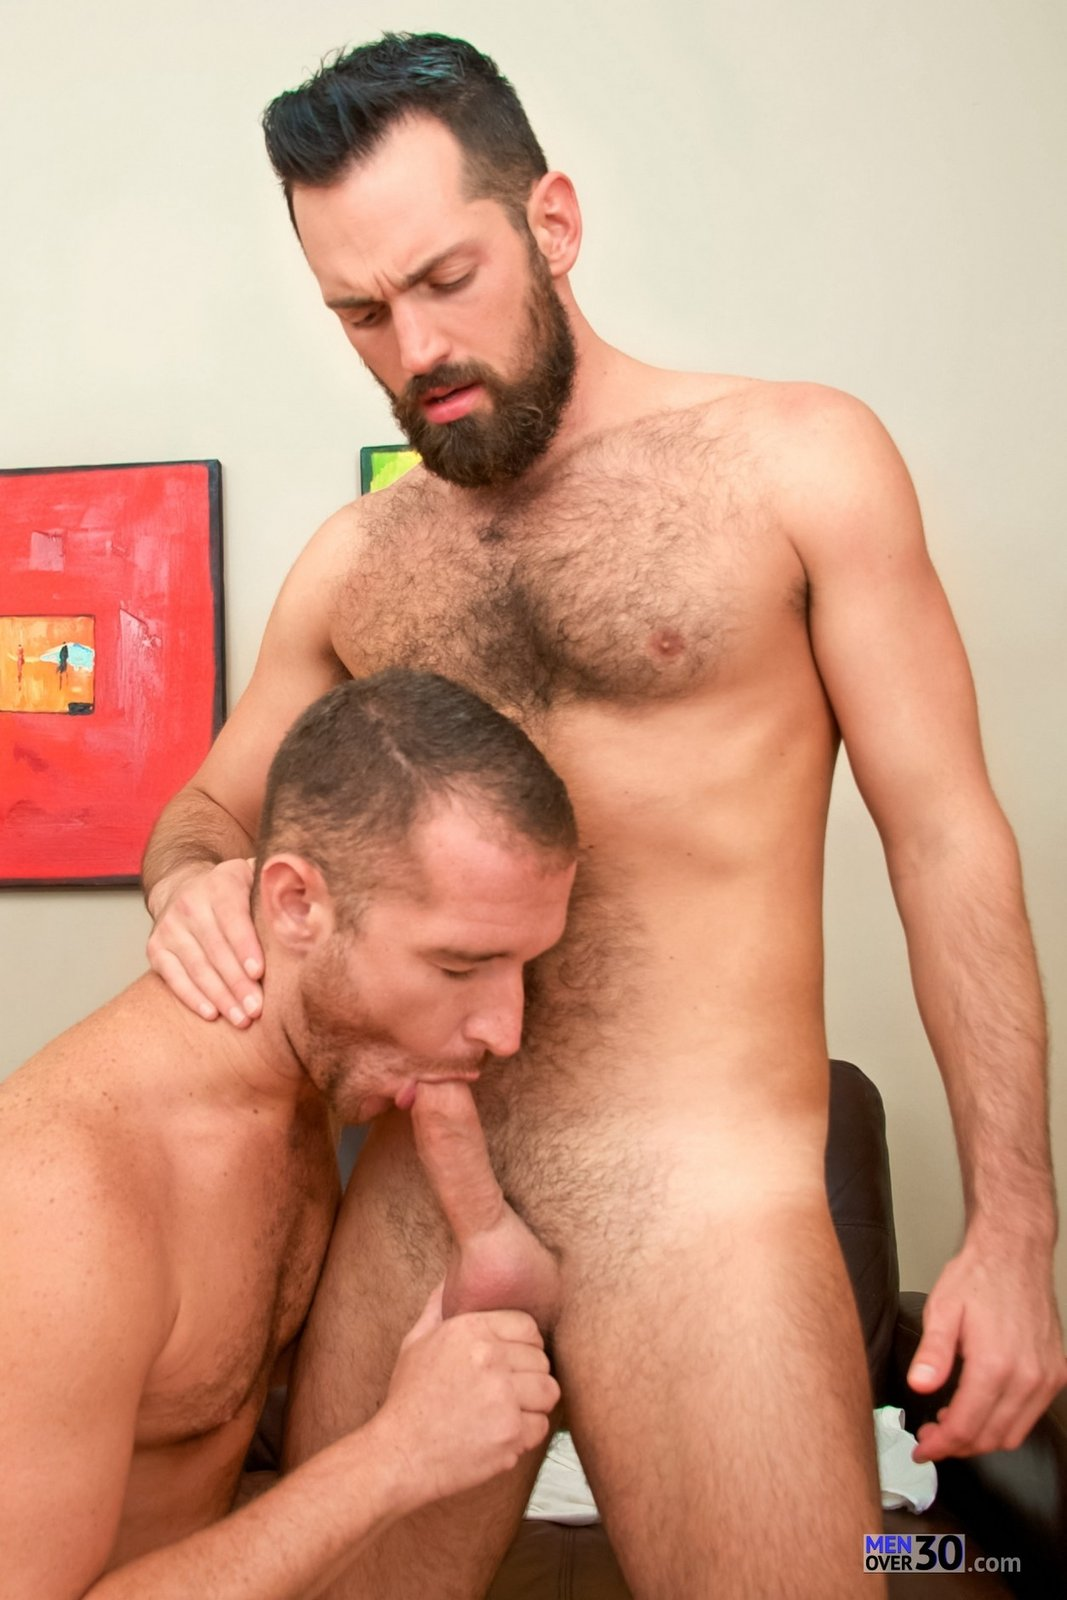 Rich gay dating sites